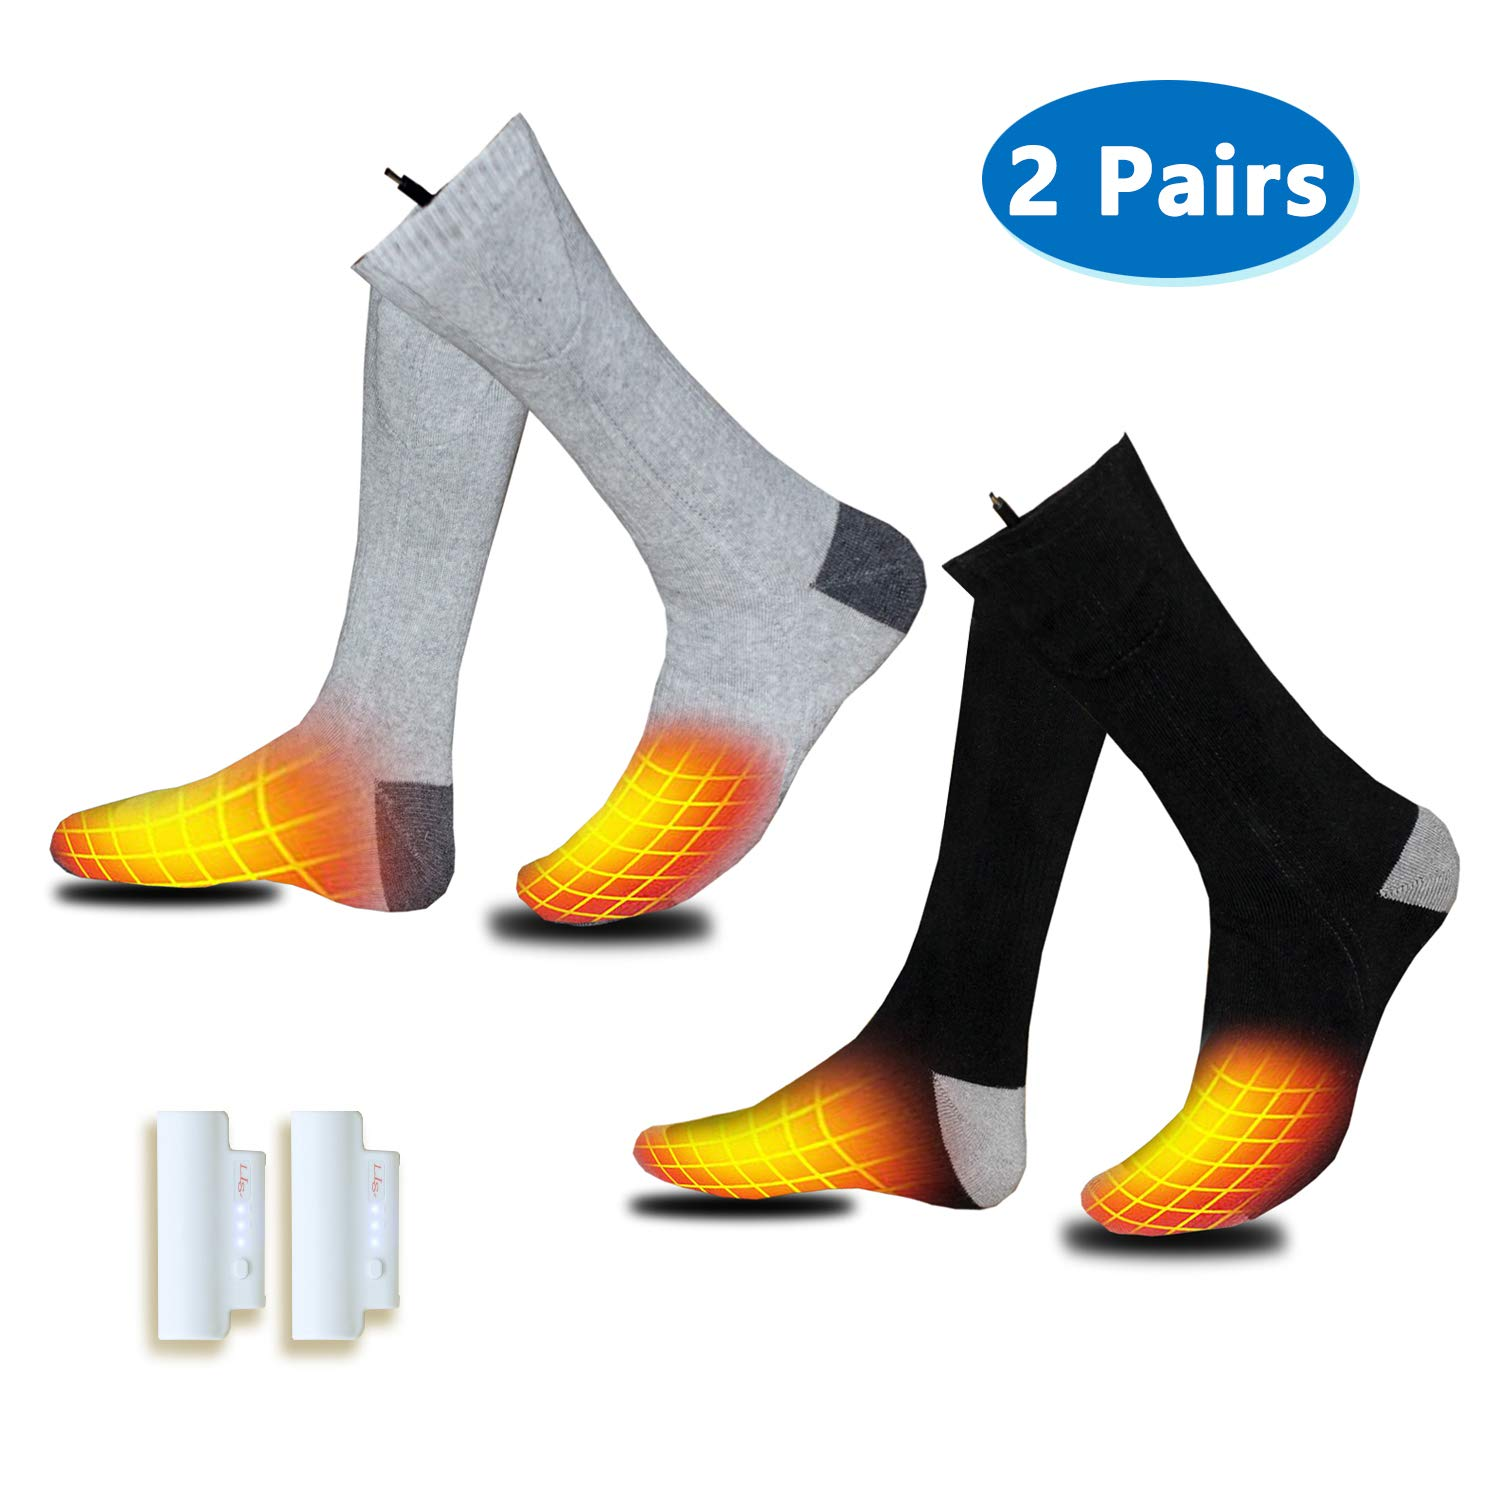 Heated Socks, 2 Pairs Electrice Sock Footwear with Pair Rehargeable Lithium Battery Cotton Heated Socks Keep Forefoot and Toes Warm Heating Times Last 5-9 Hours Suitable for Winter Outdoor Hunting by VALLEYWIND